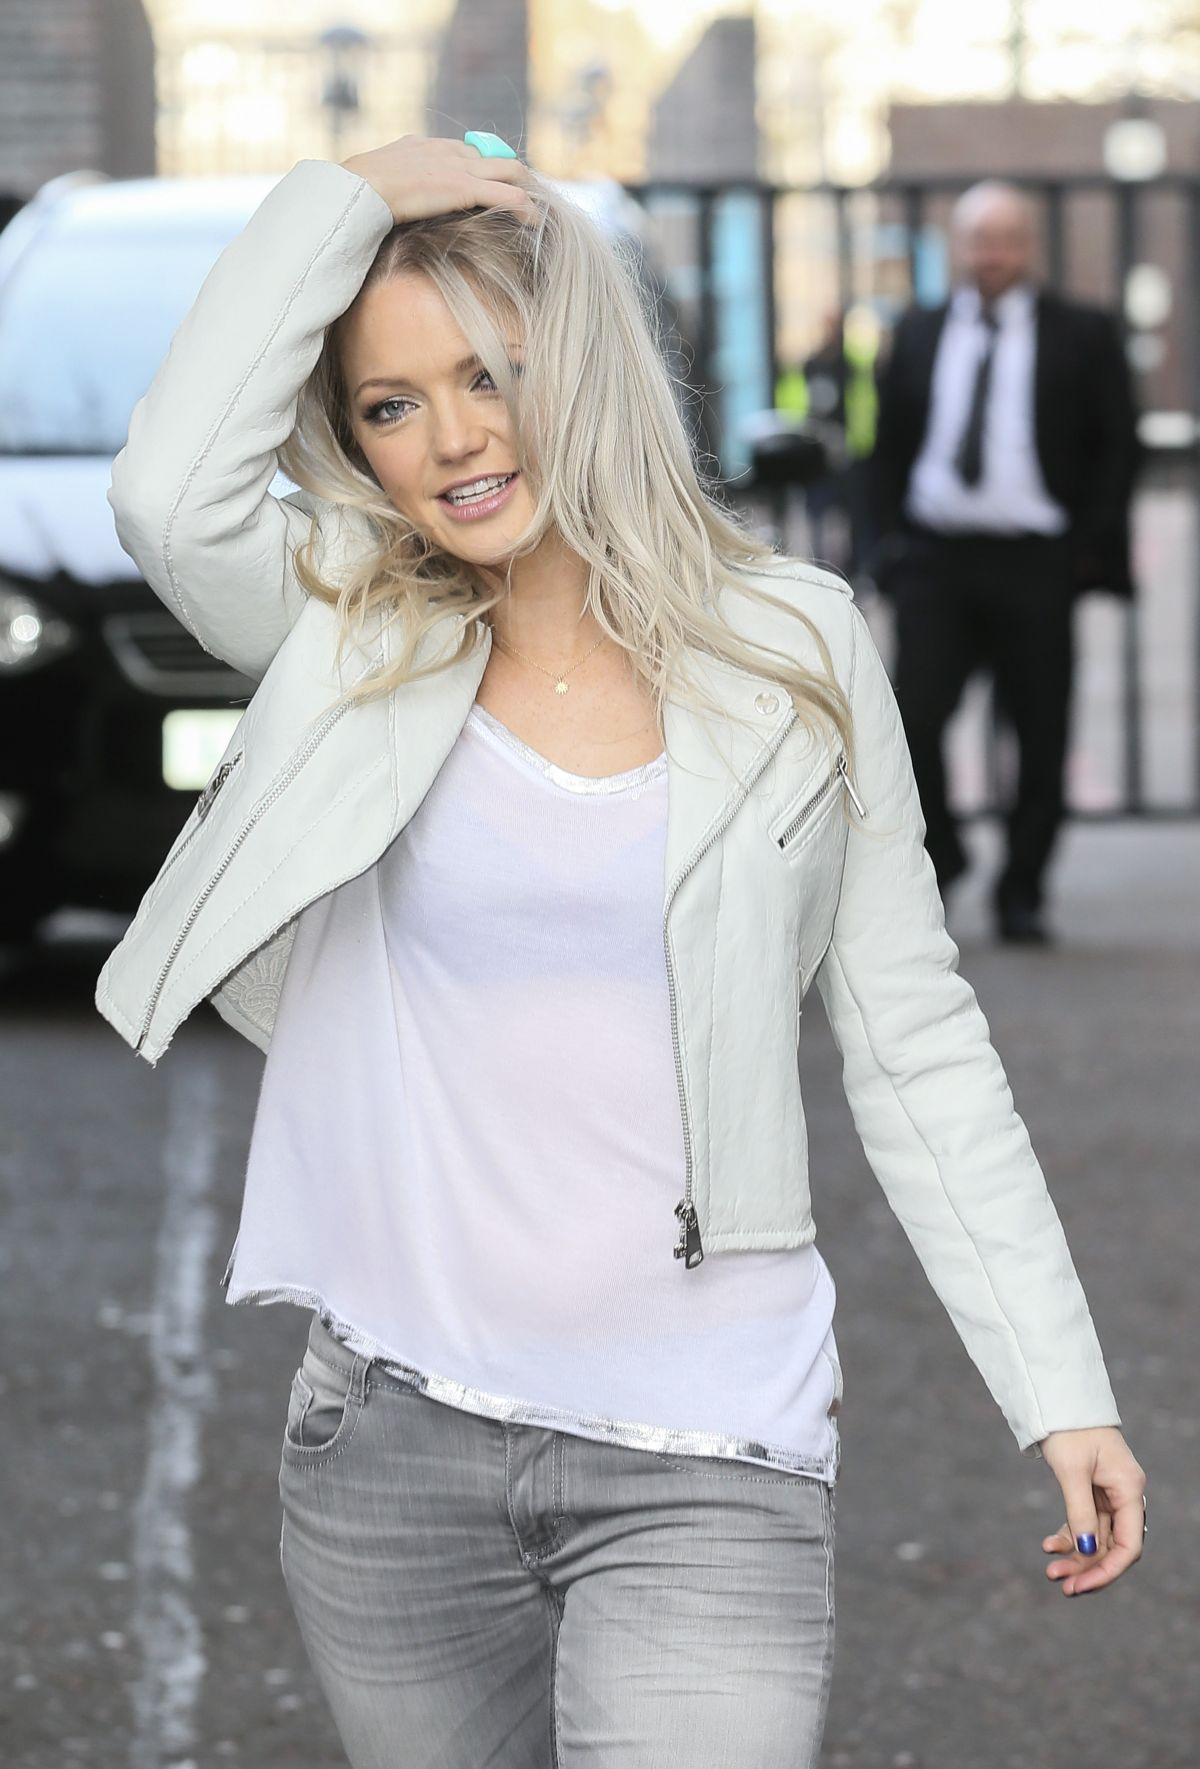 HANNAH SPEATTITT Leaves ITV Studios in London